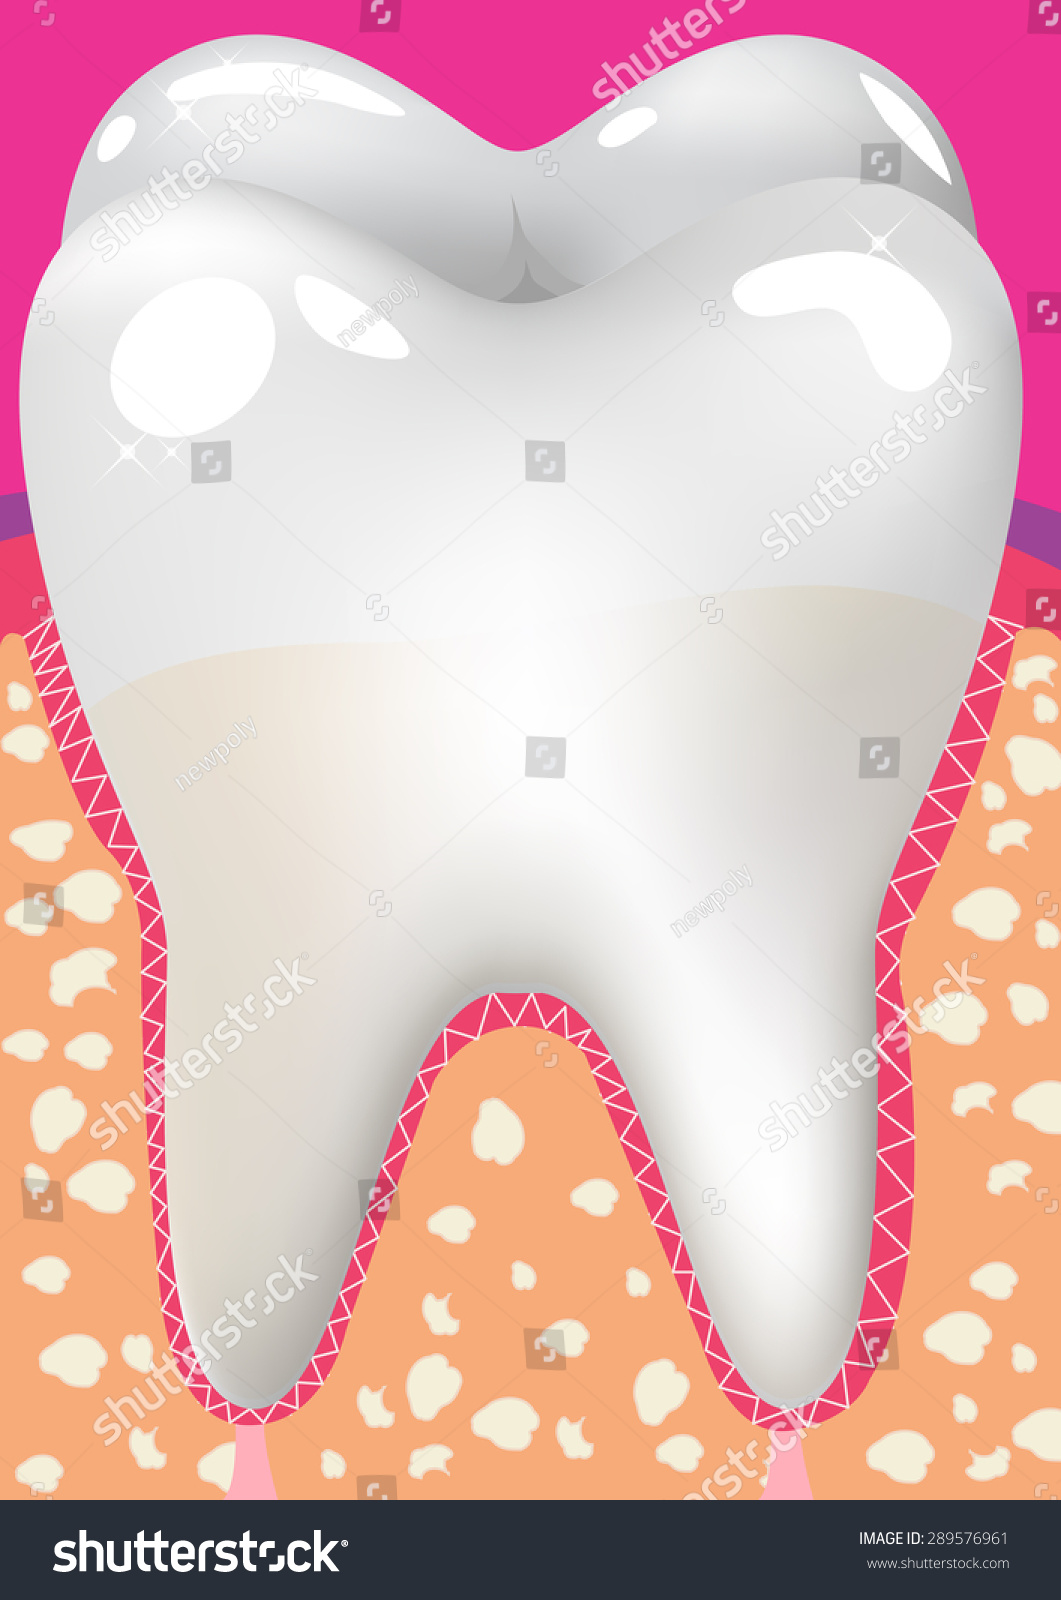 Healthy White Tooth Gums Bone Illustration Stock Photo (Photo ...